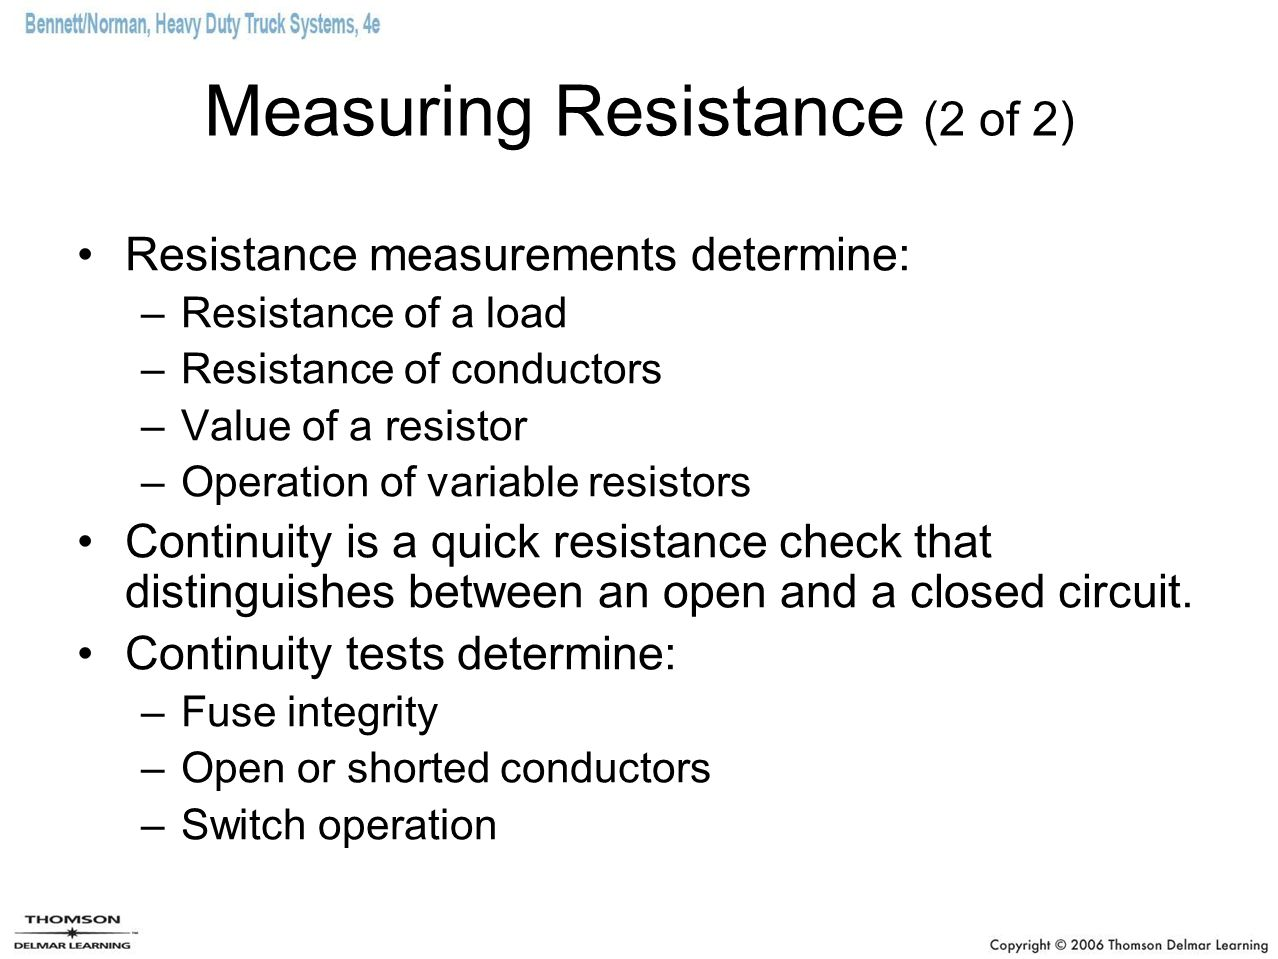 Measuring Resistance (2 of 2)